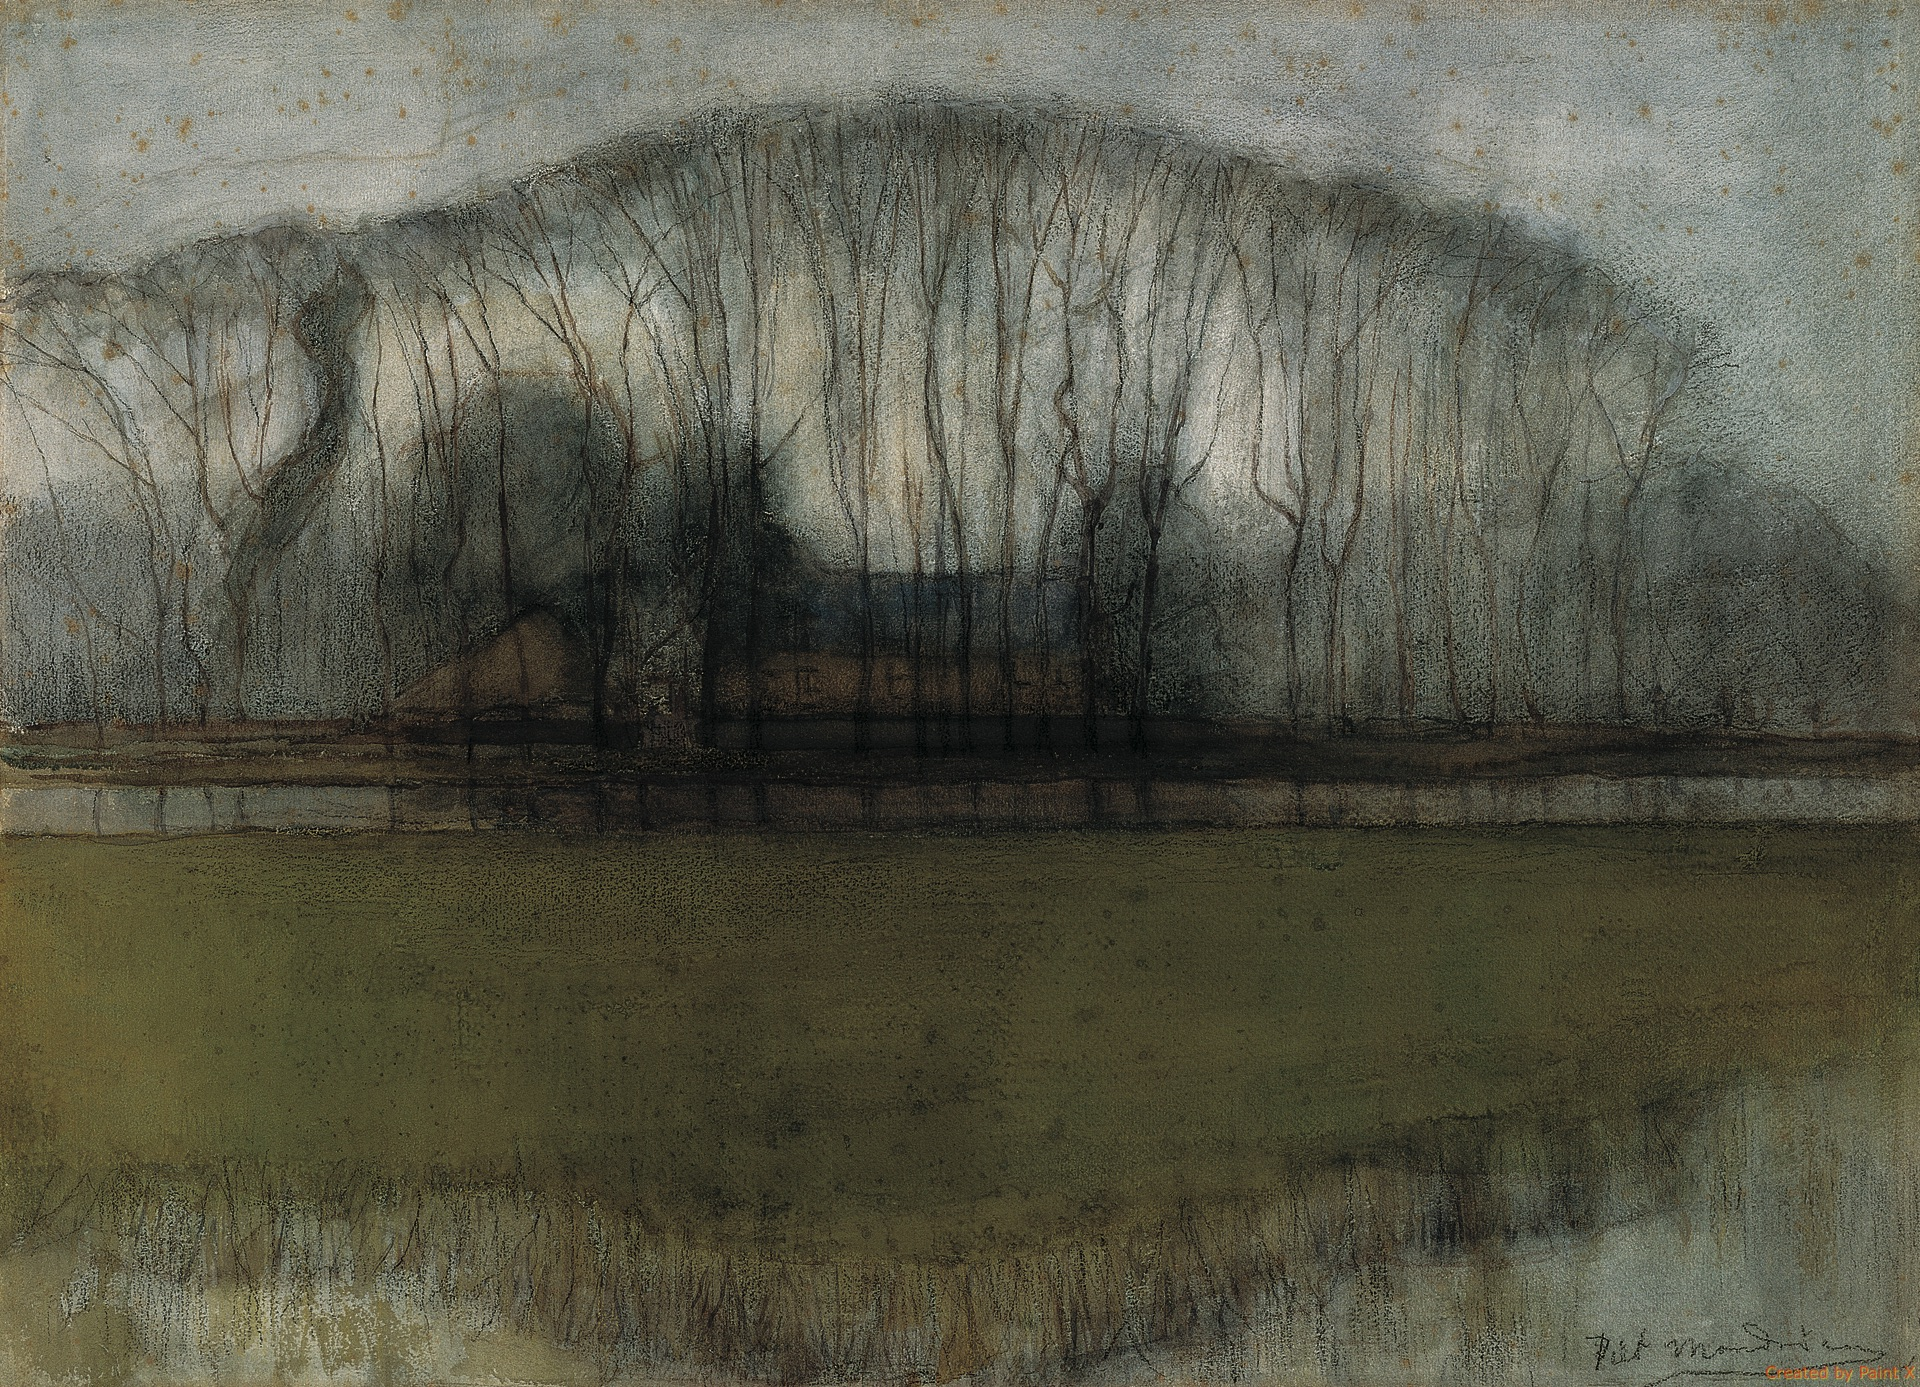 Line Of Trees In Marshy Landscape Frans Hals Museum